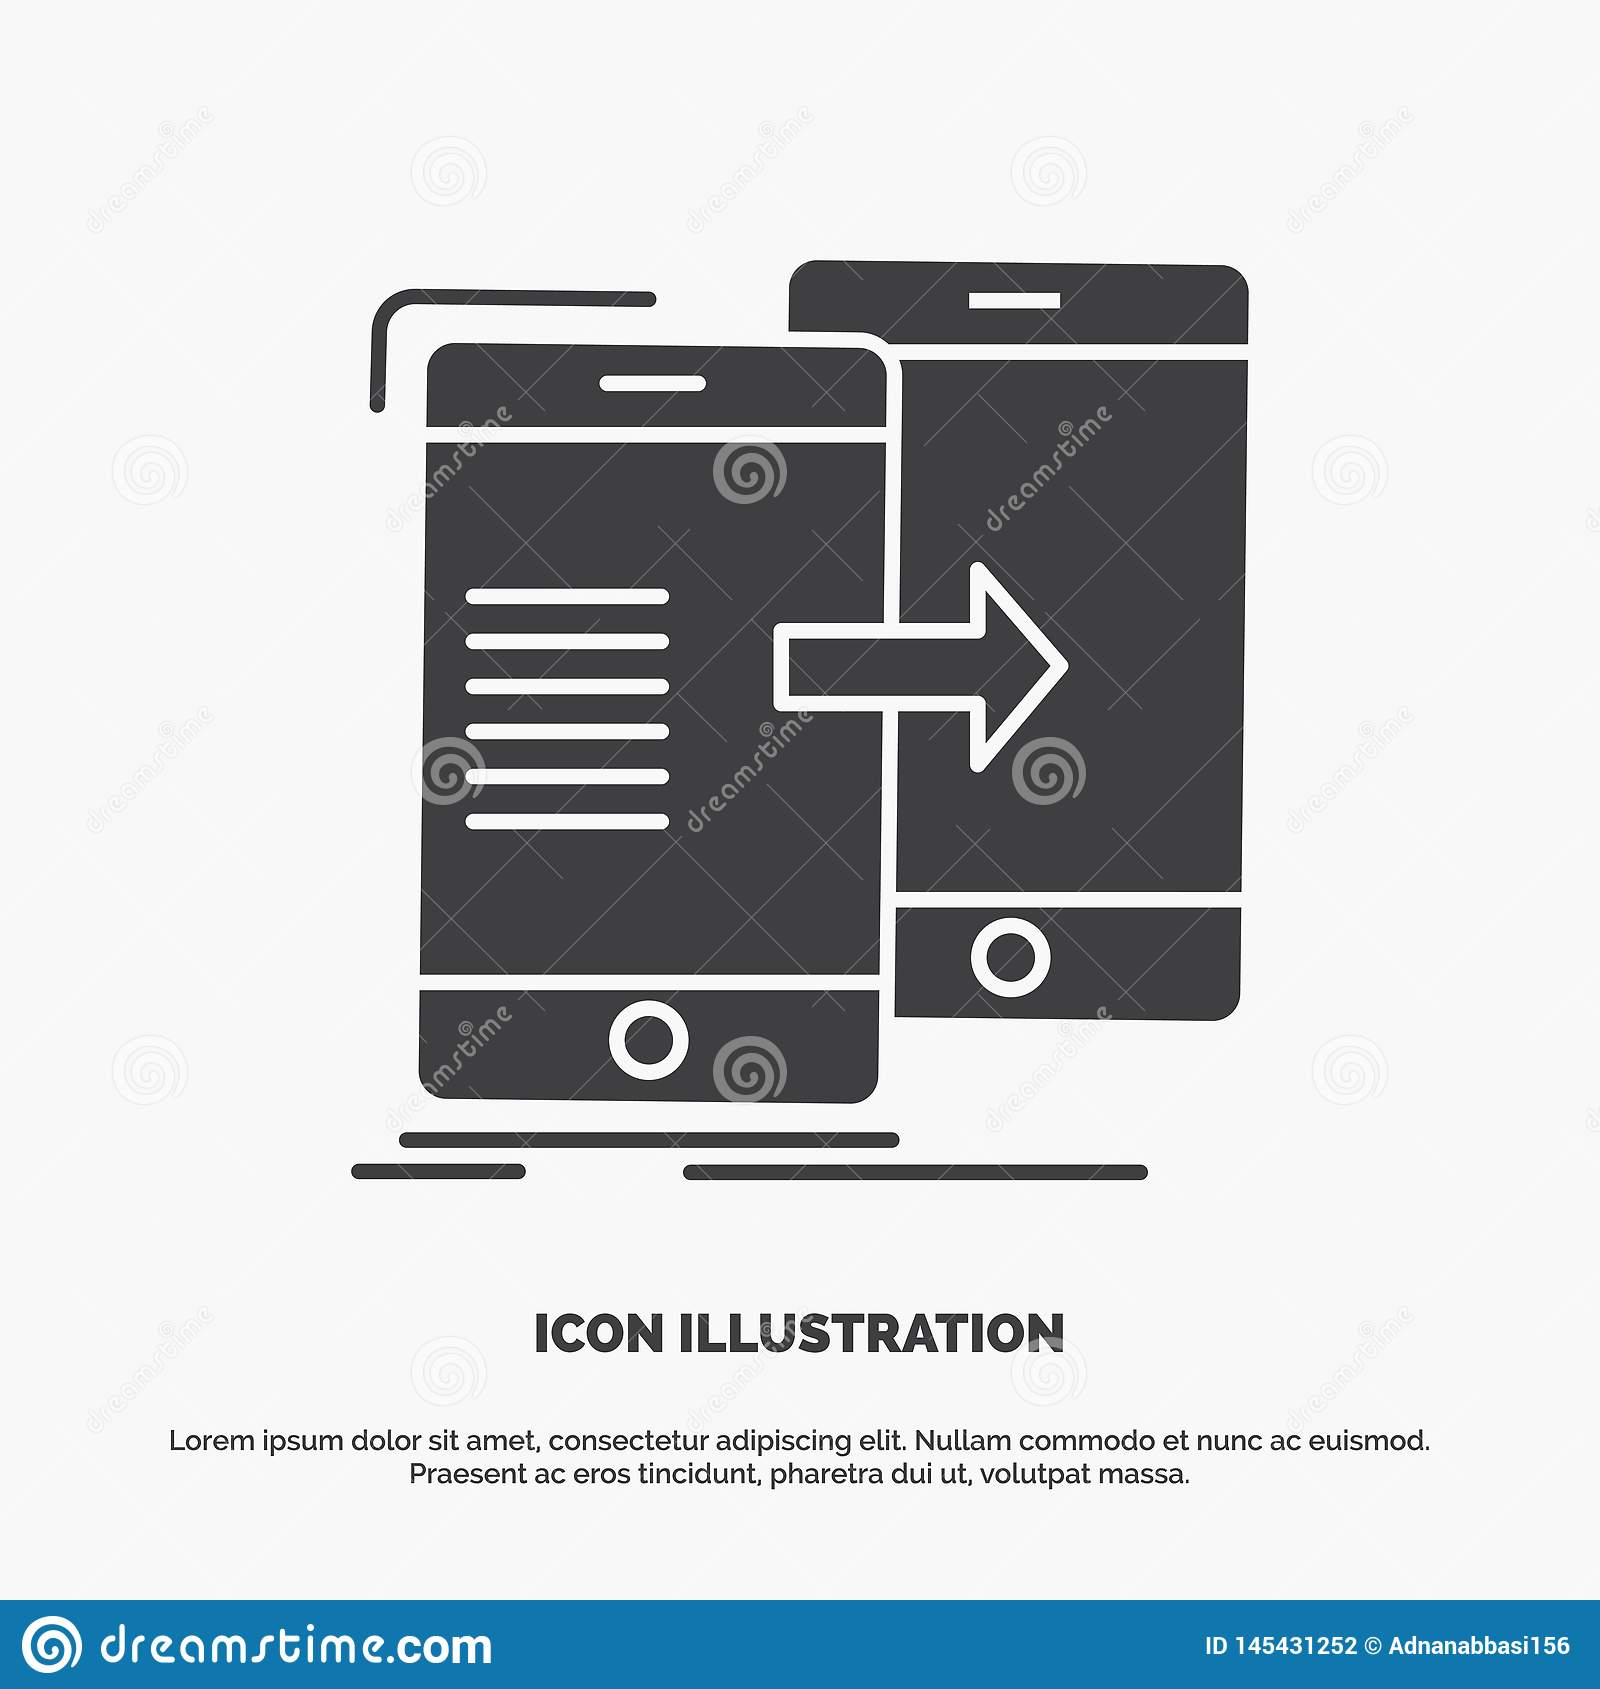 data, Sharing, sync, synchronization, syncing Icon. glyph vector gray symbol for UI and UX, website or mobile application